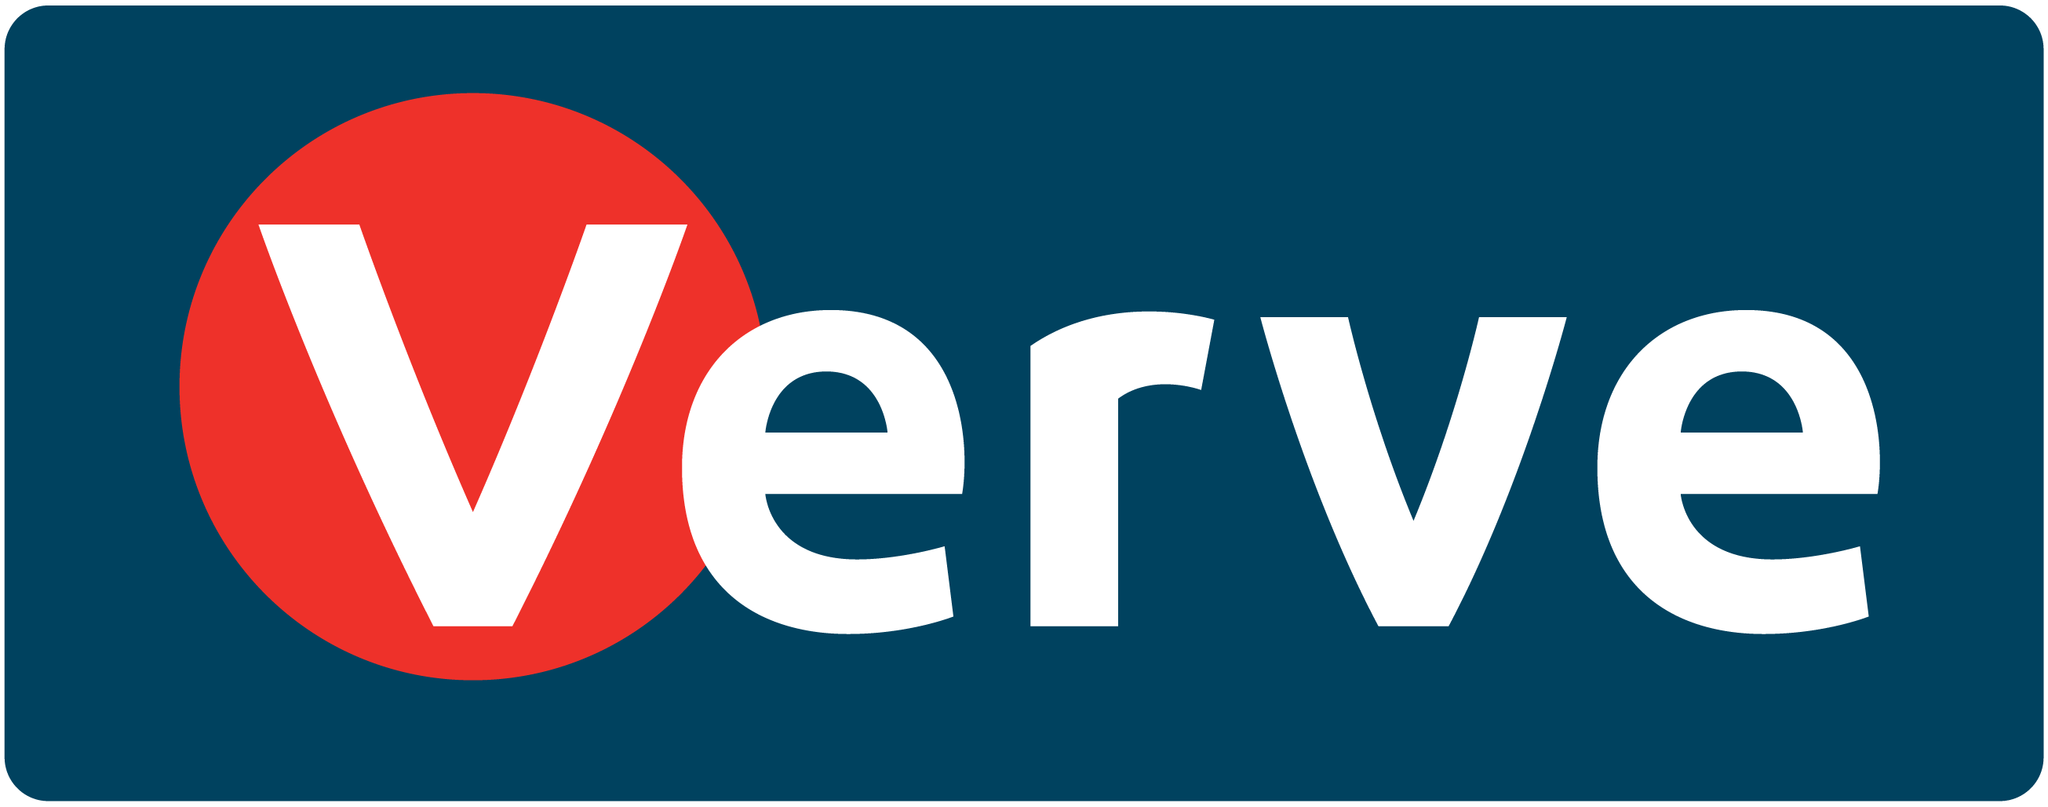 Verve International - Wikipedia